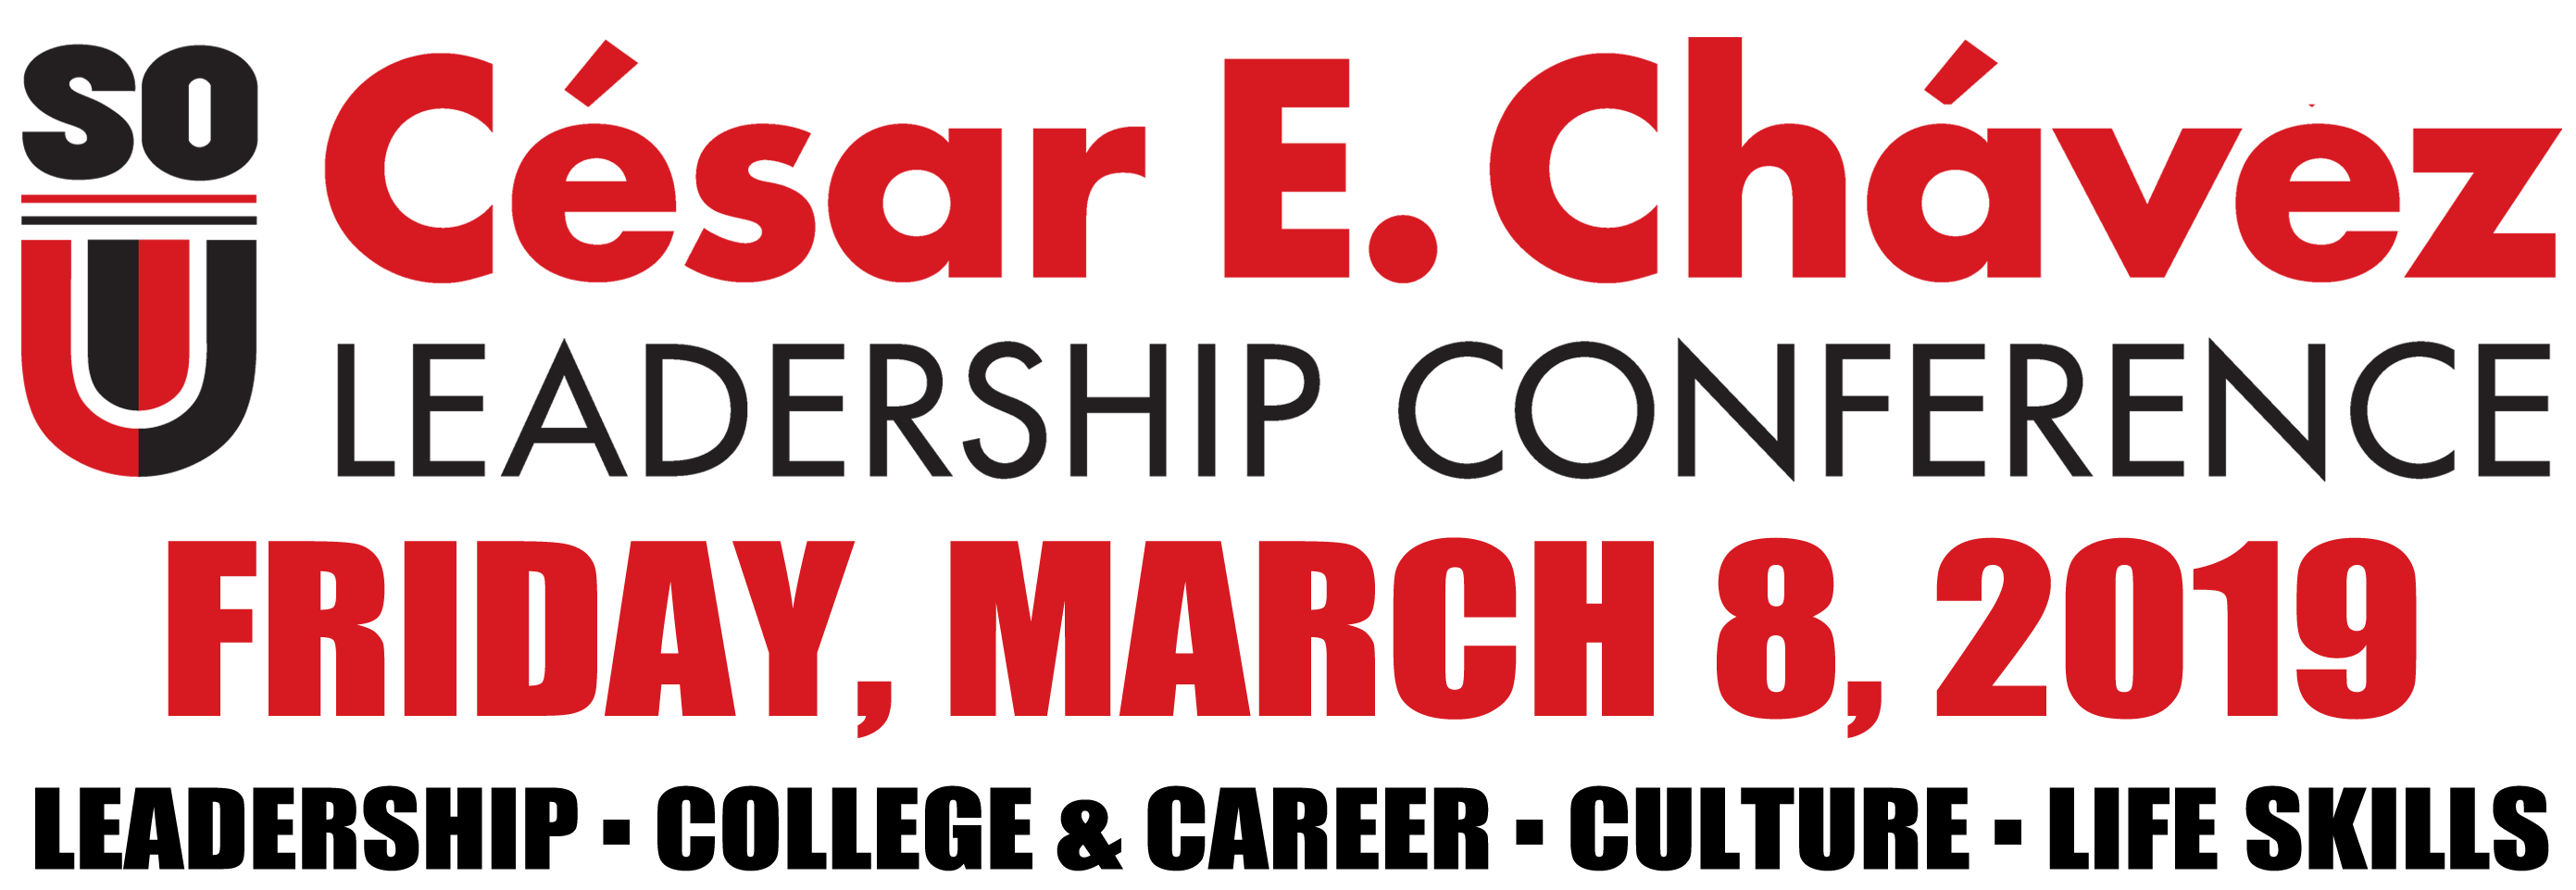 Cesar Chavez Conference Friday March 8, 2019